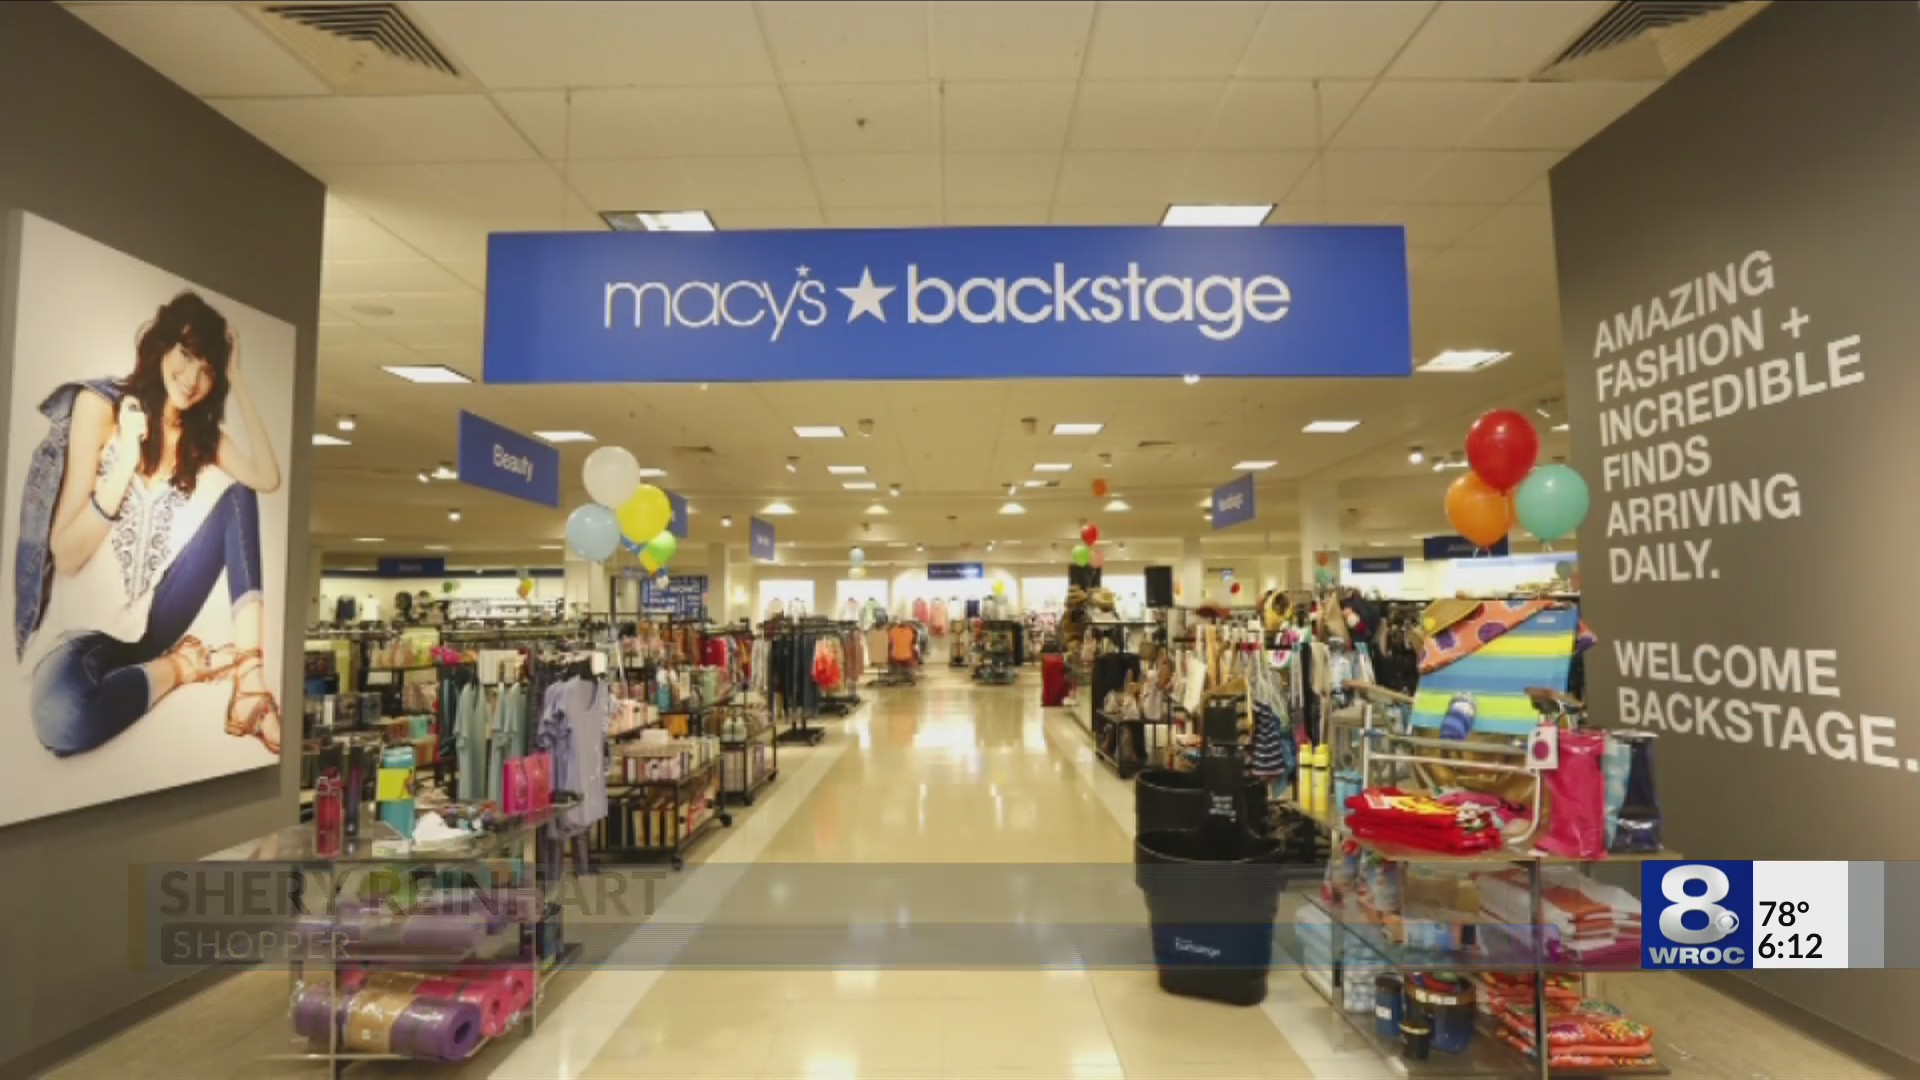 Macy's Backstage brings new experience for shoppers at Eastview Mall